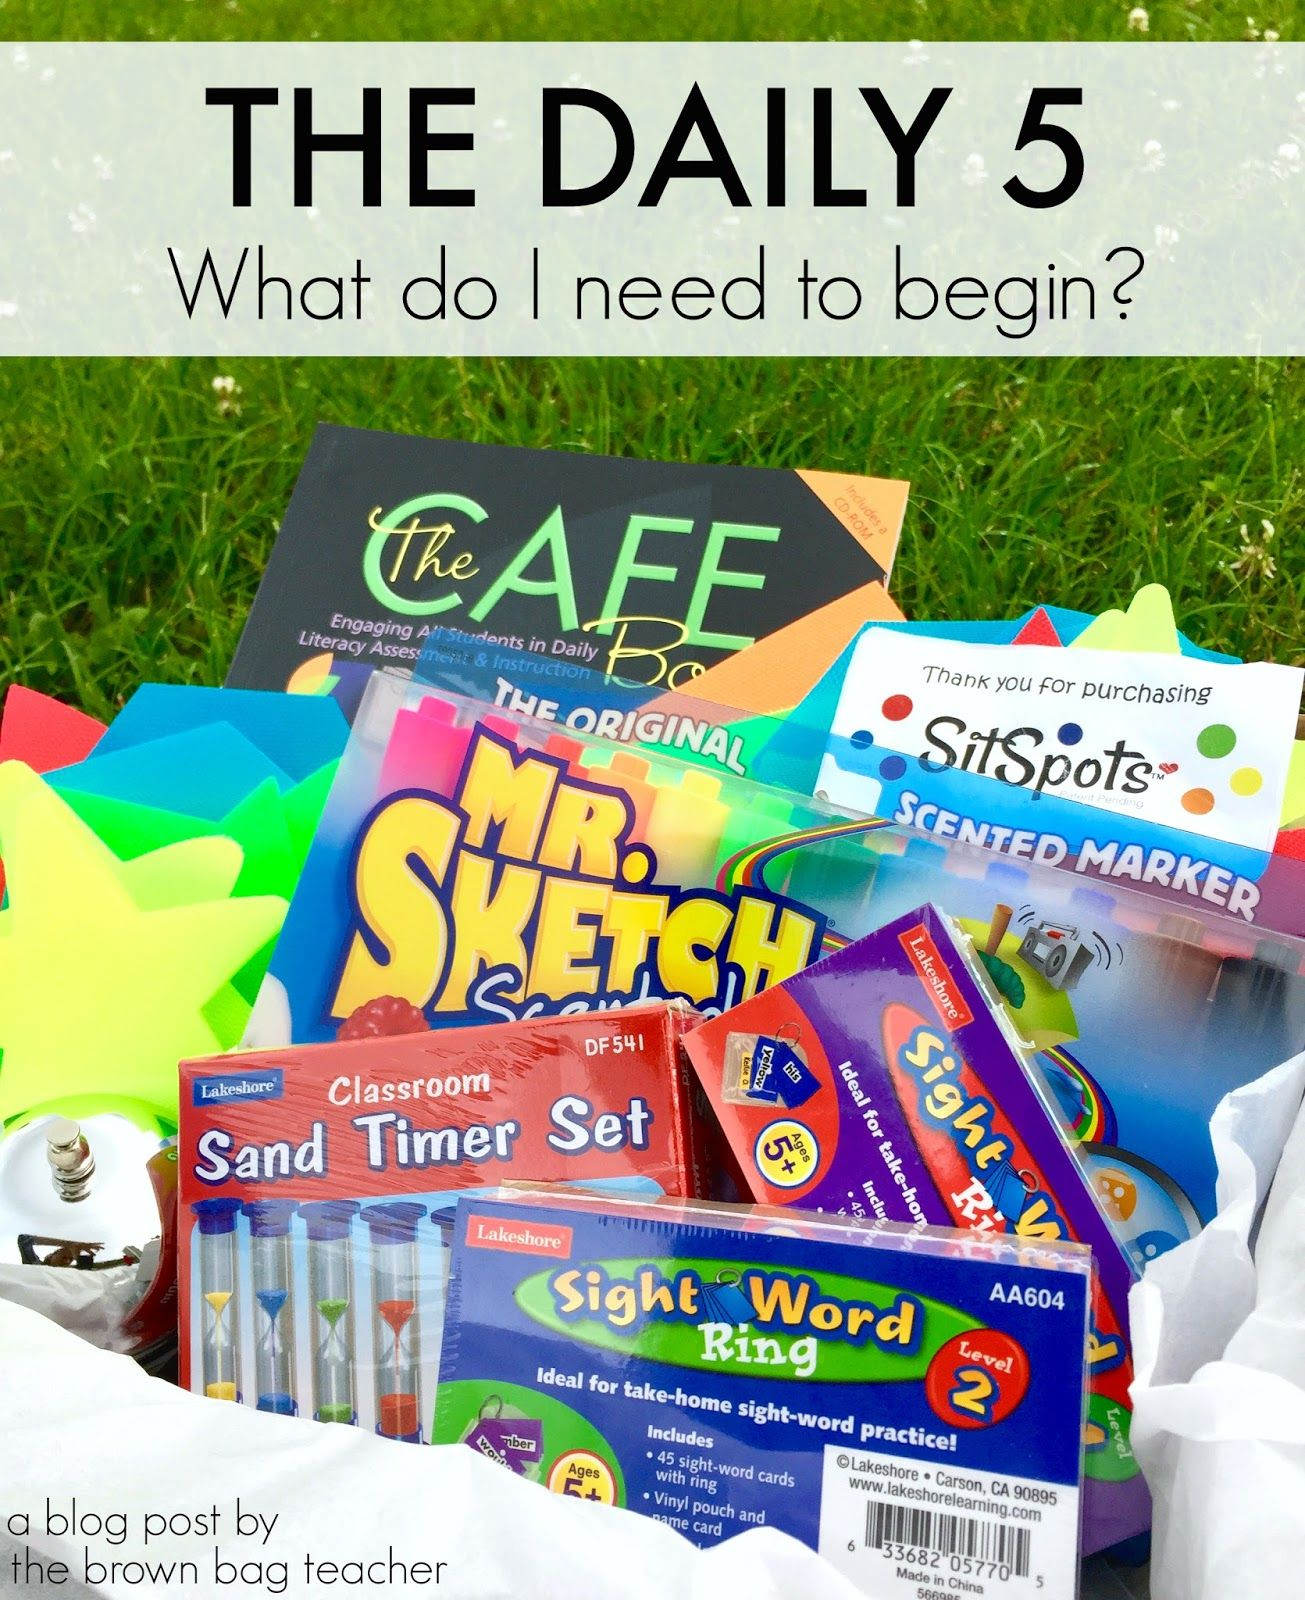 The Brown-Bag Teacher: The Daily 5: What Do I Need to Begin, Chapter 4